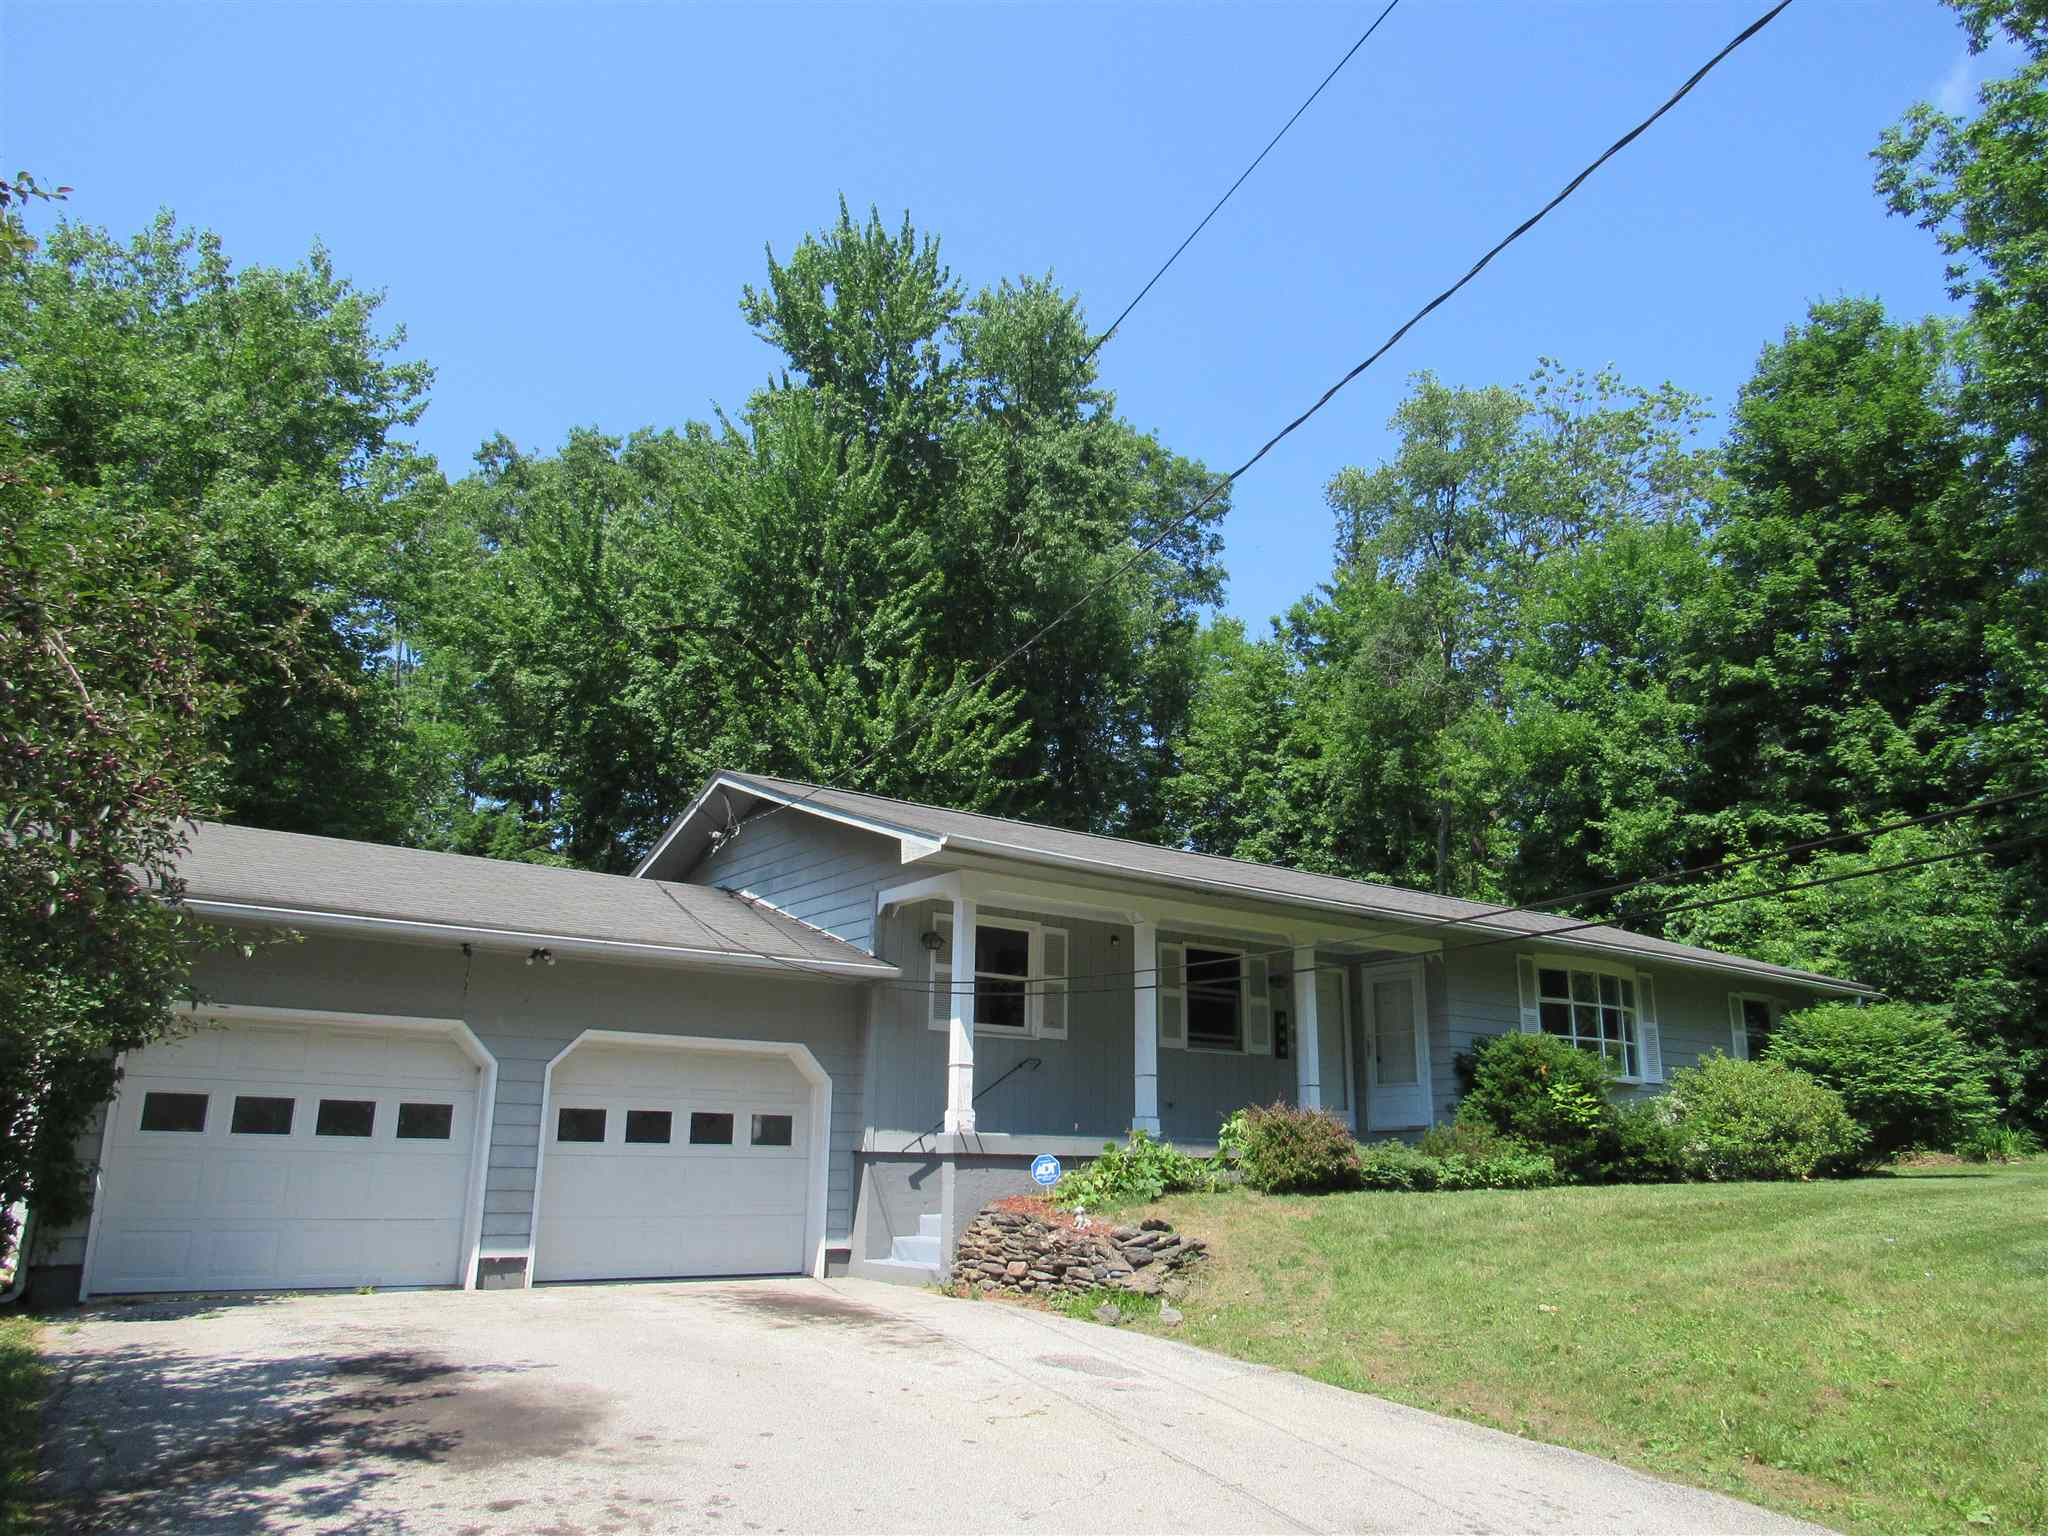 251 Killington Avenue Rutland City VT 05701